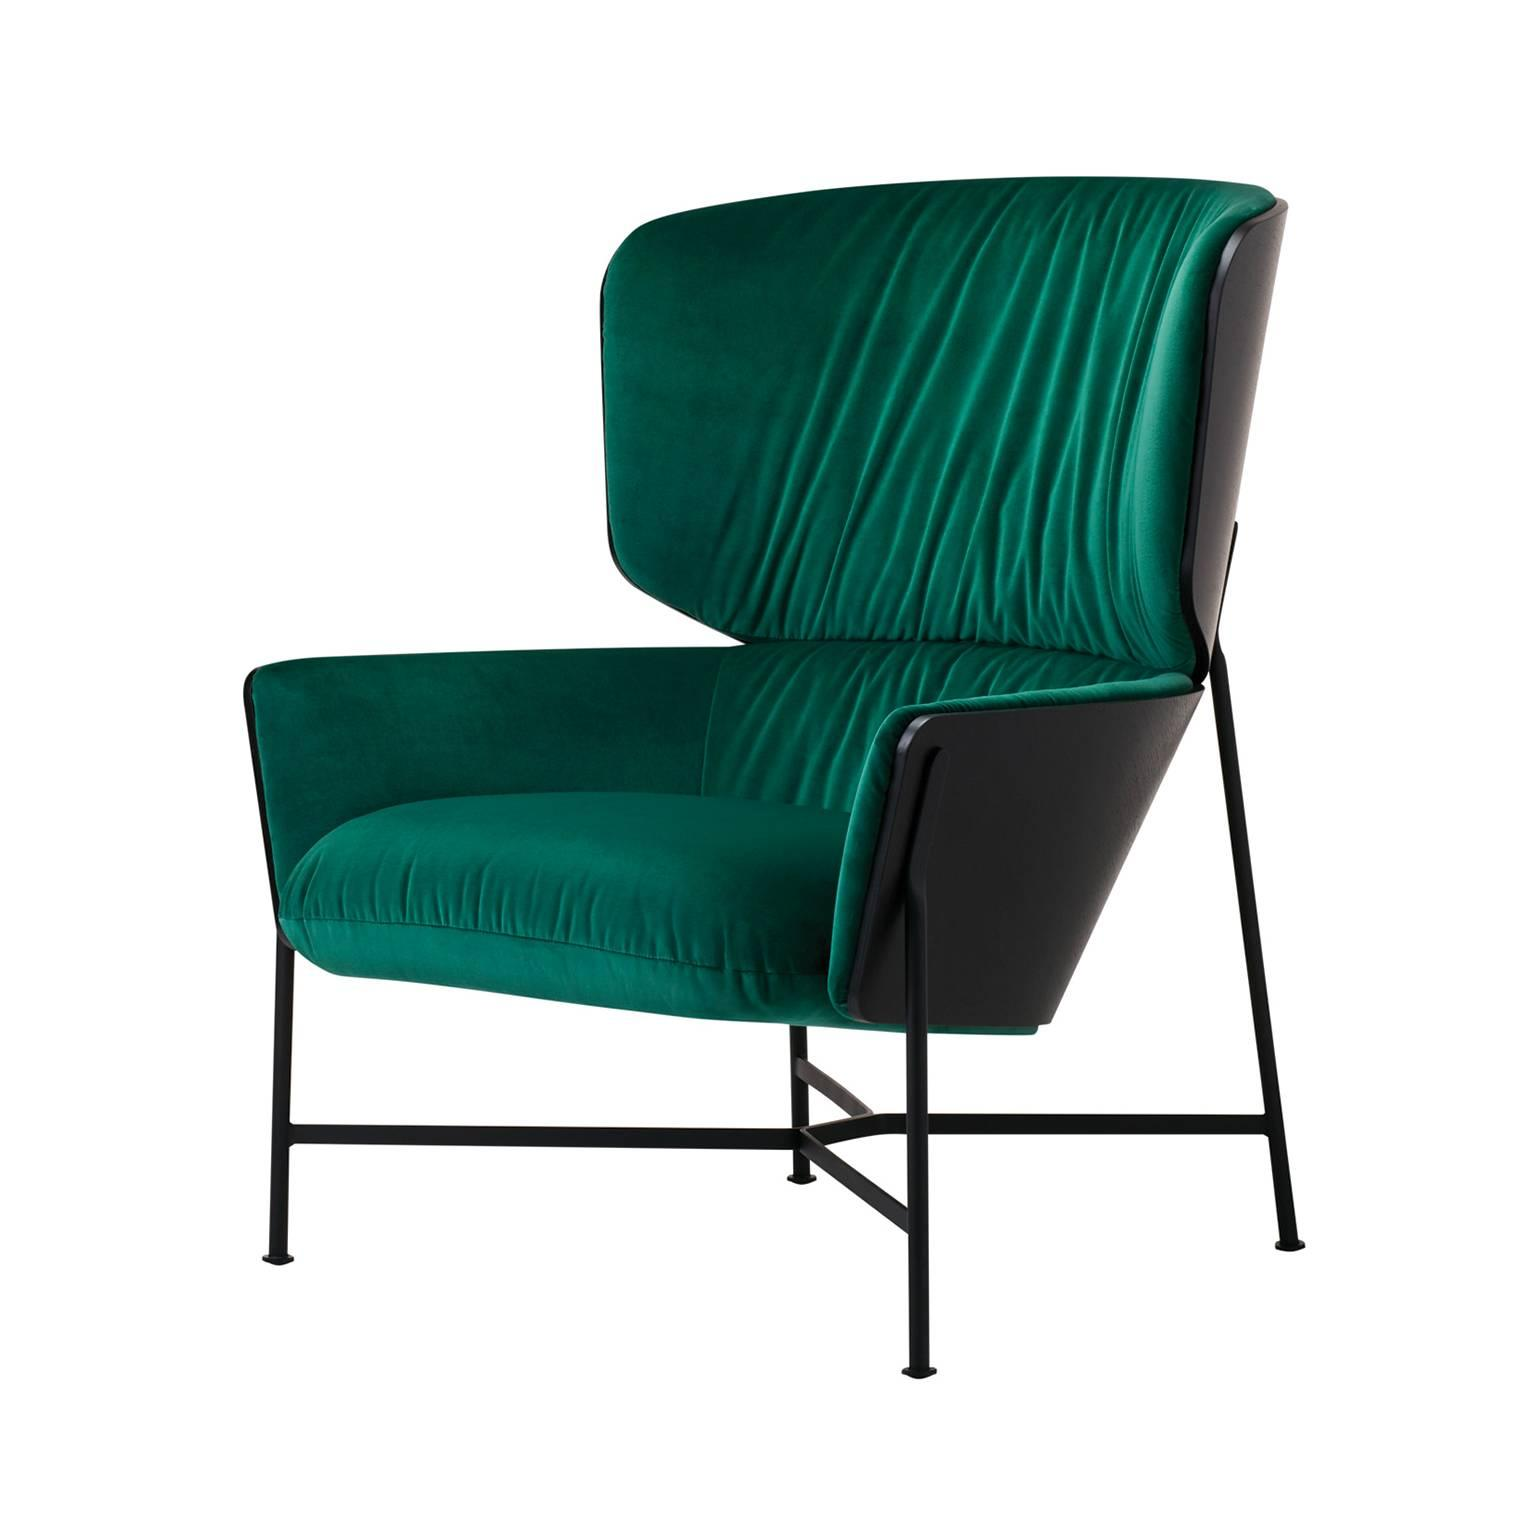 Caristo High Back Armchair Upholstered in Leather or Fabric with